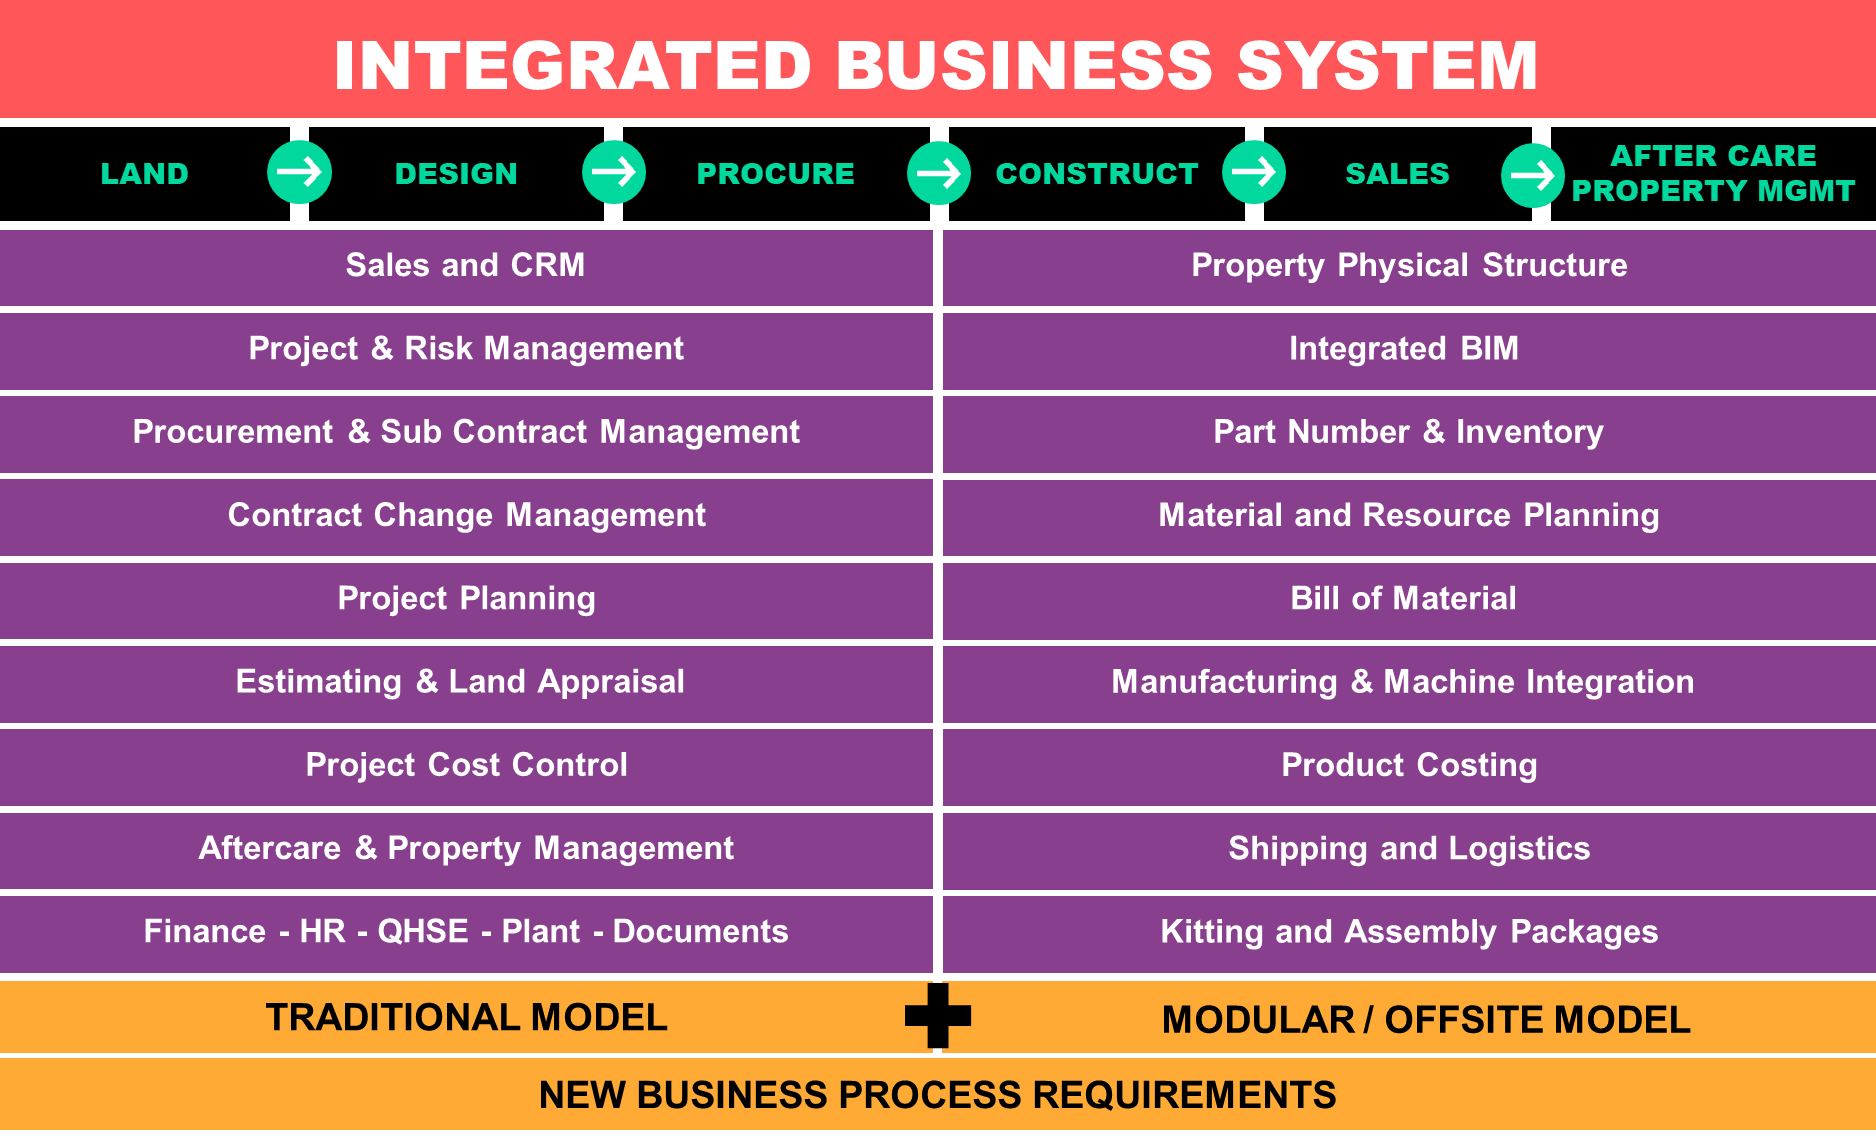 Integrated Business System